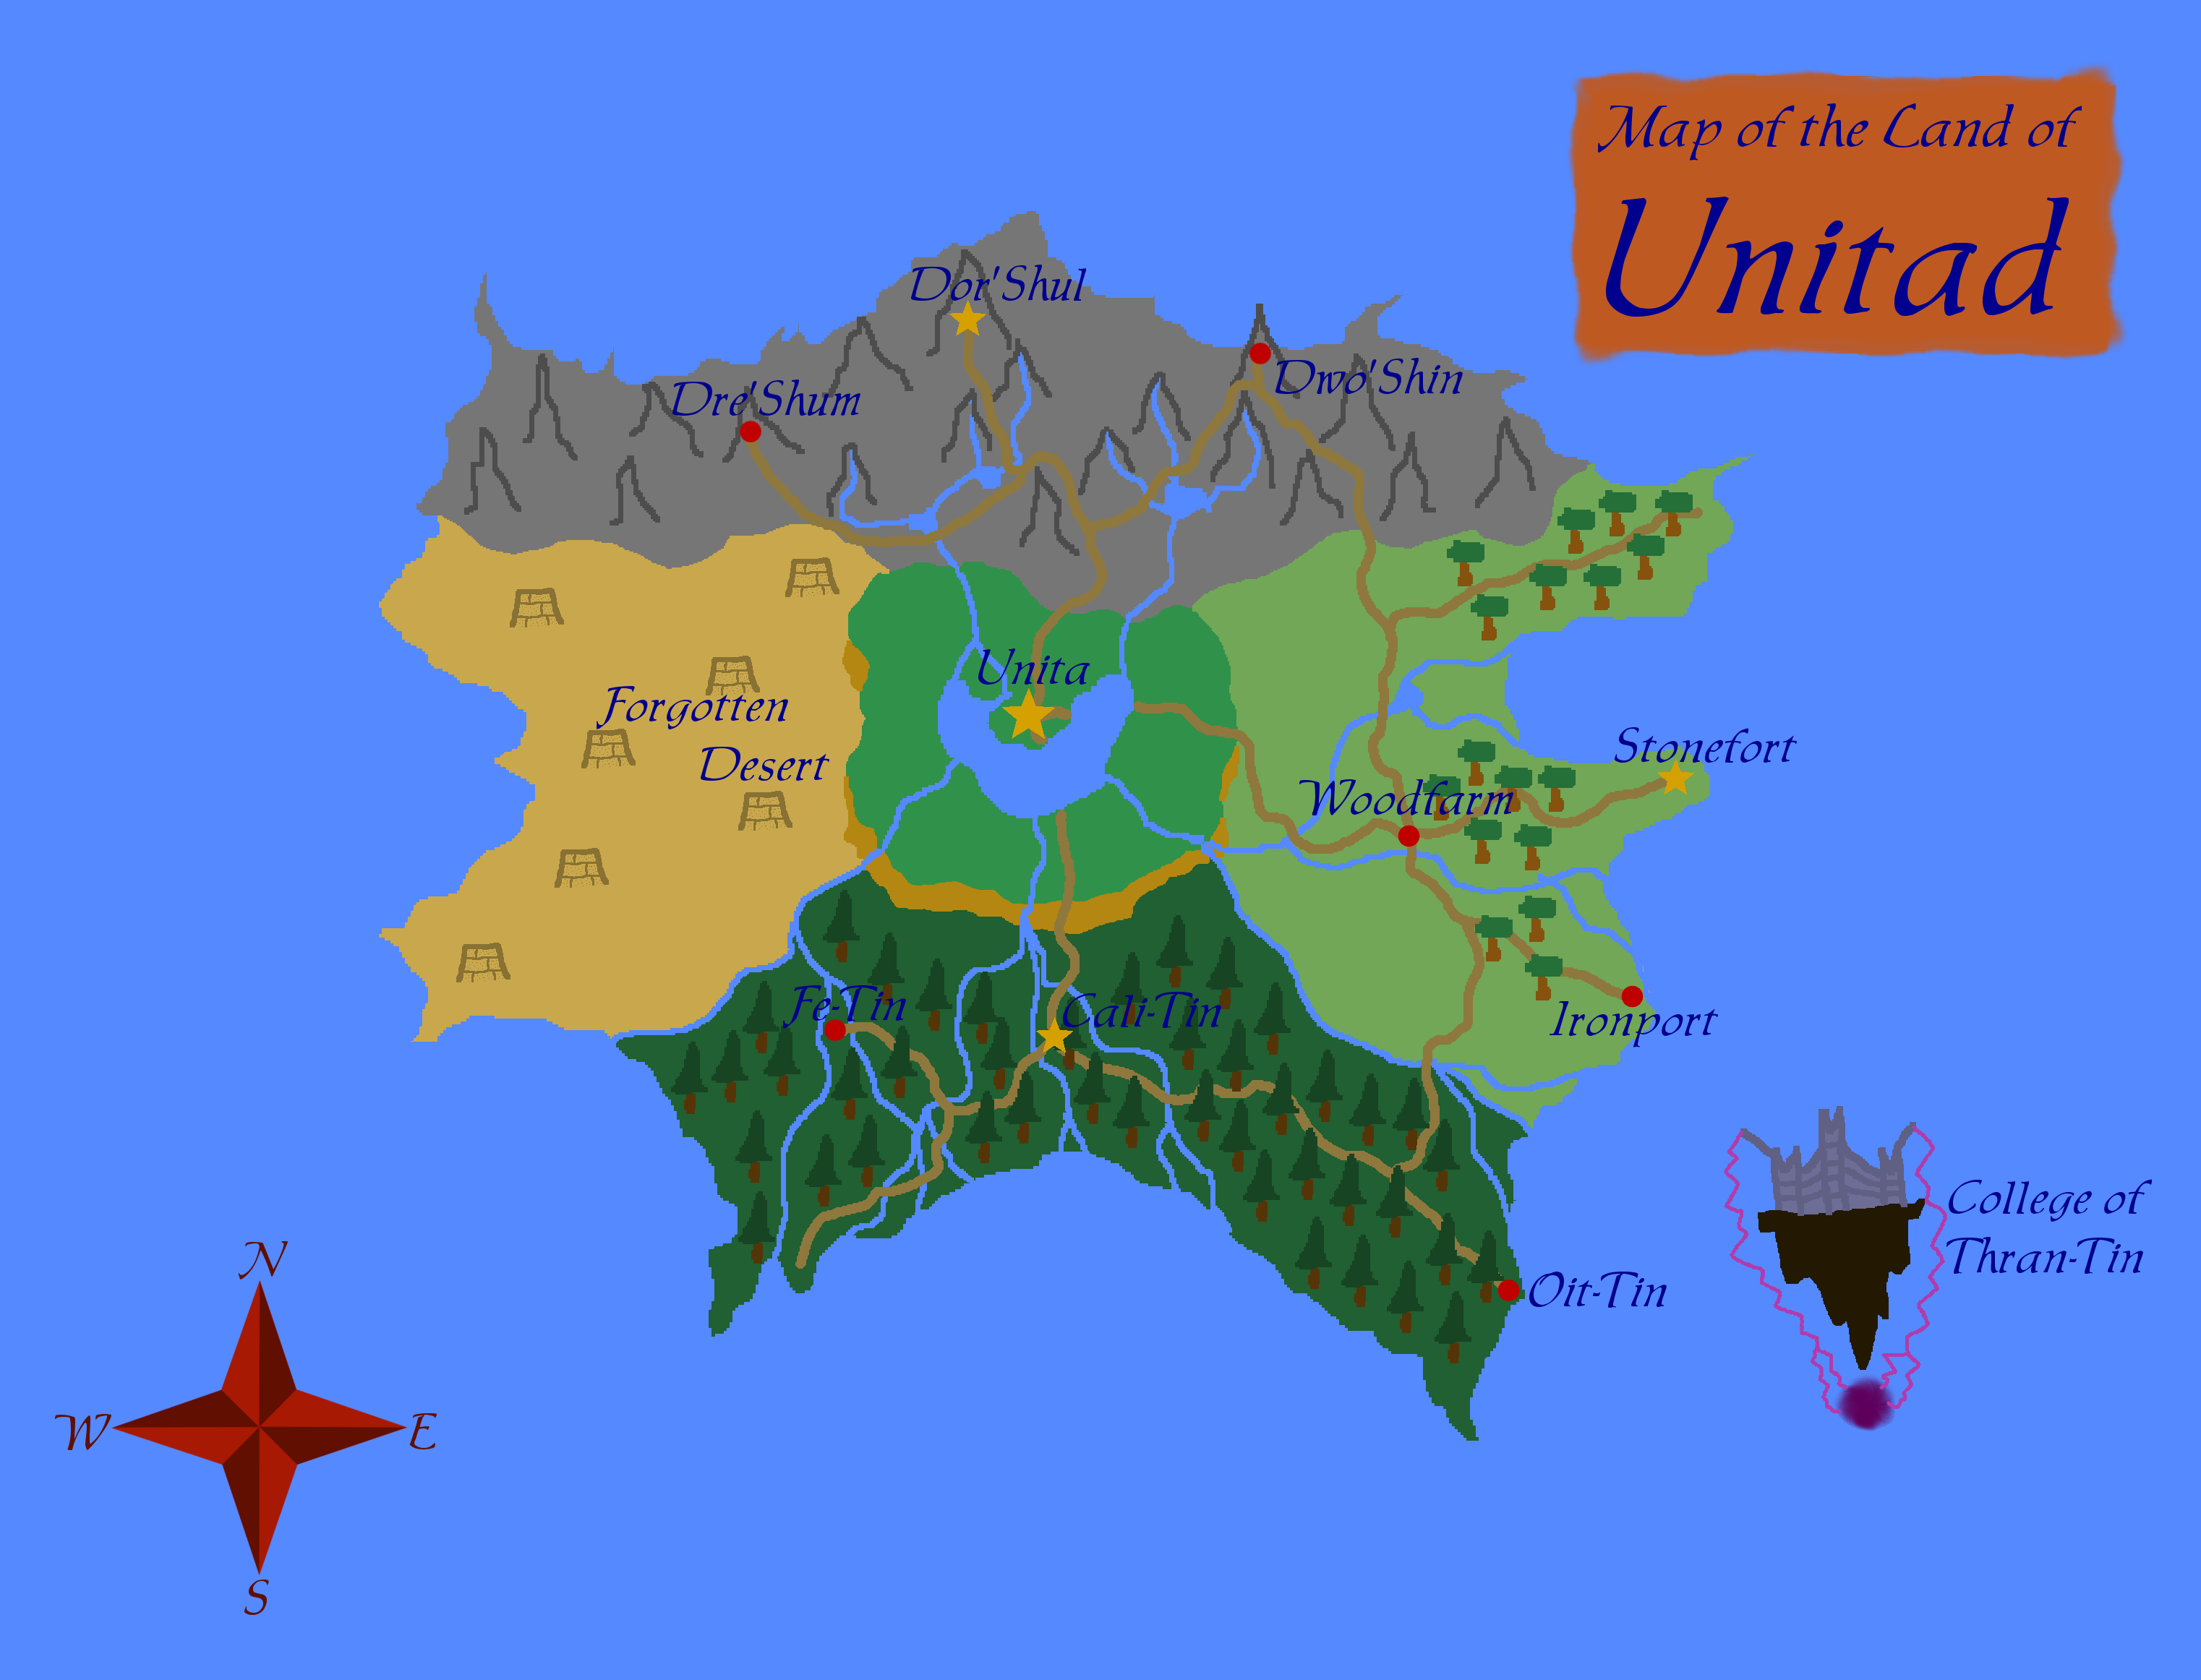 Unitad_Map.png